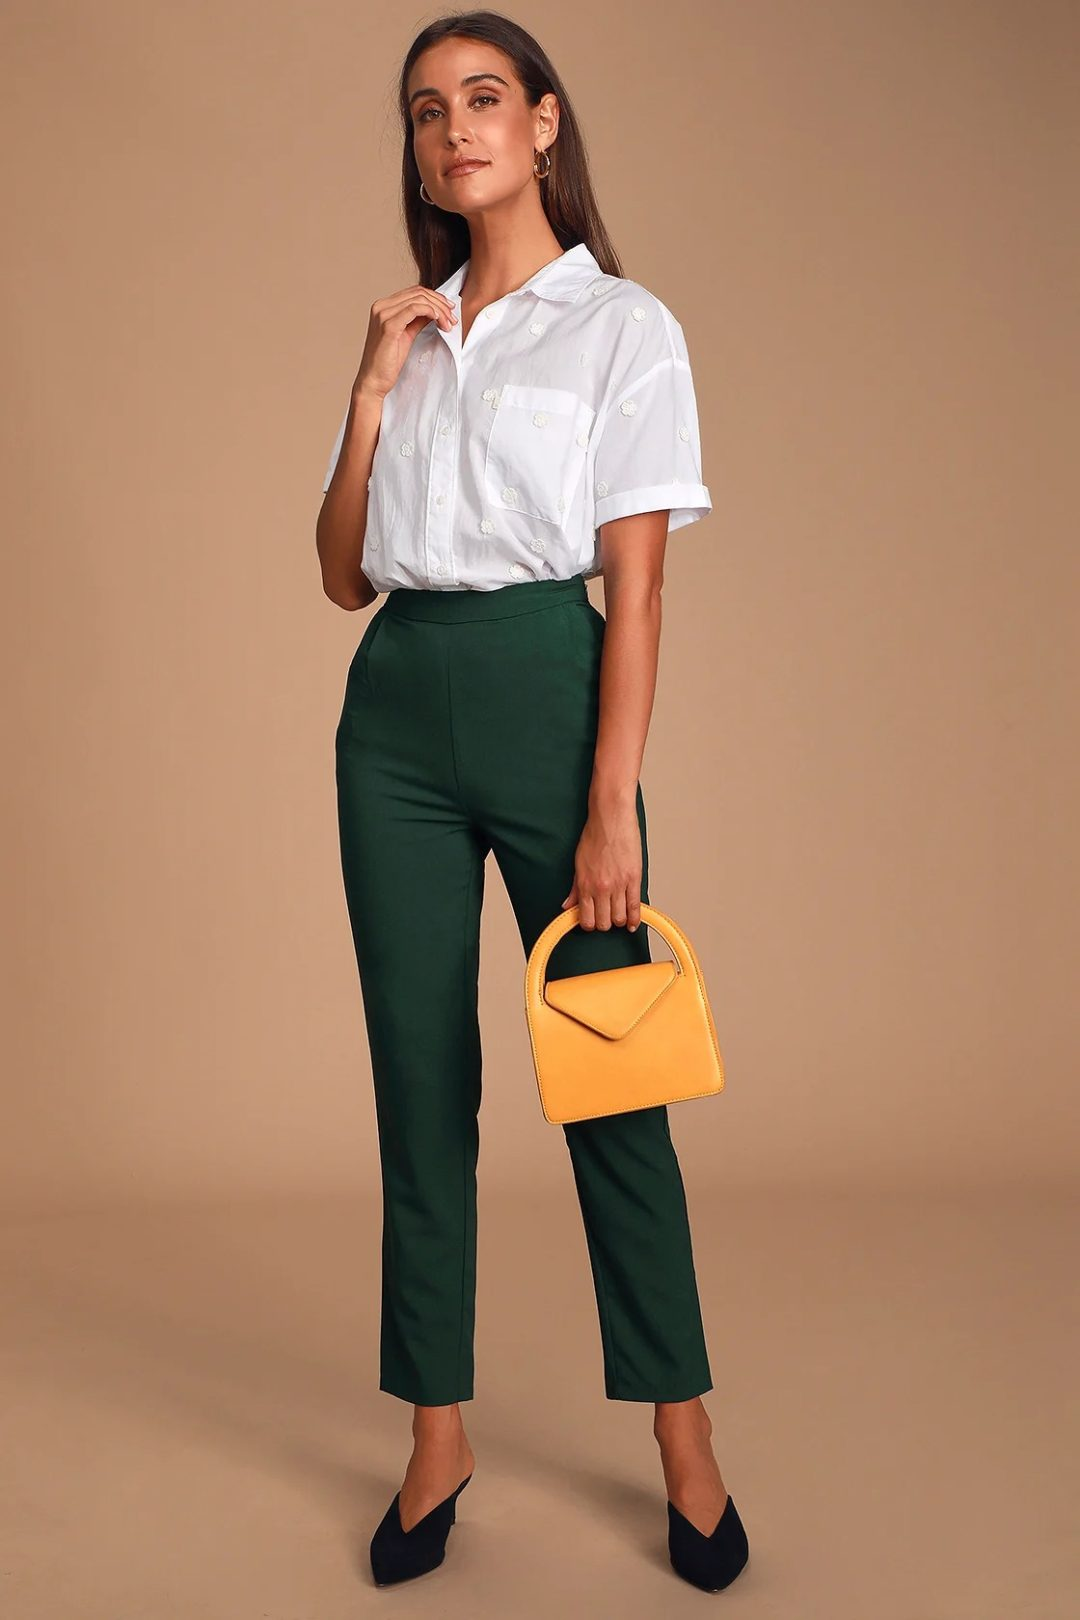 White collared blouse with emerald green straight leg pants